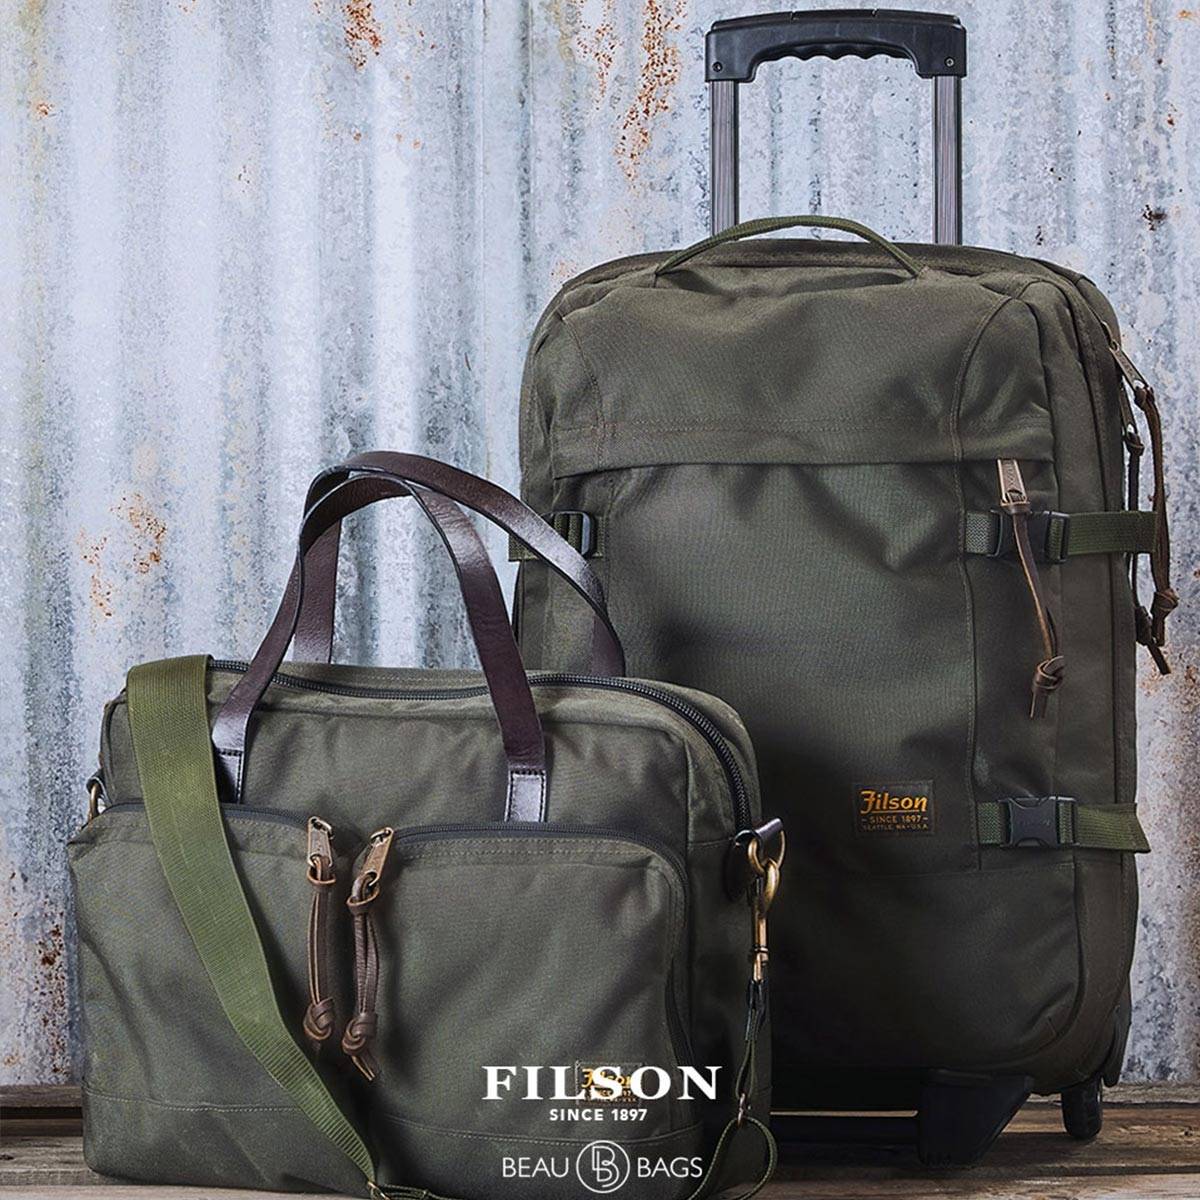 Filson Dryden Dryden 2-Wheel Rolling Carry-On Bag 20047728-Otter Green, built with abrasion-resistant ballistic nylon for years of reliable travel